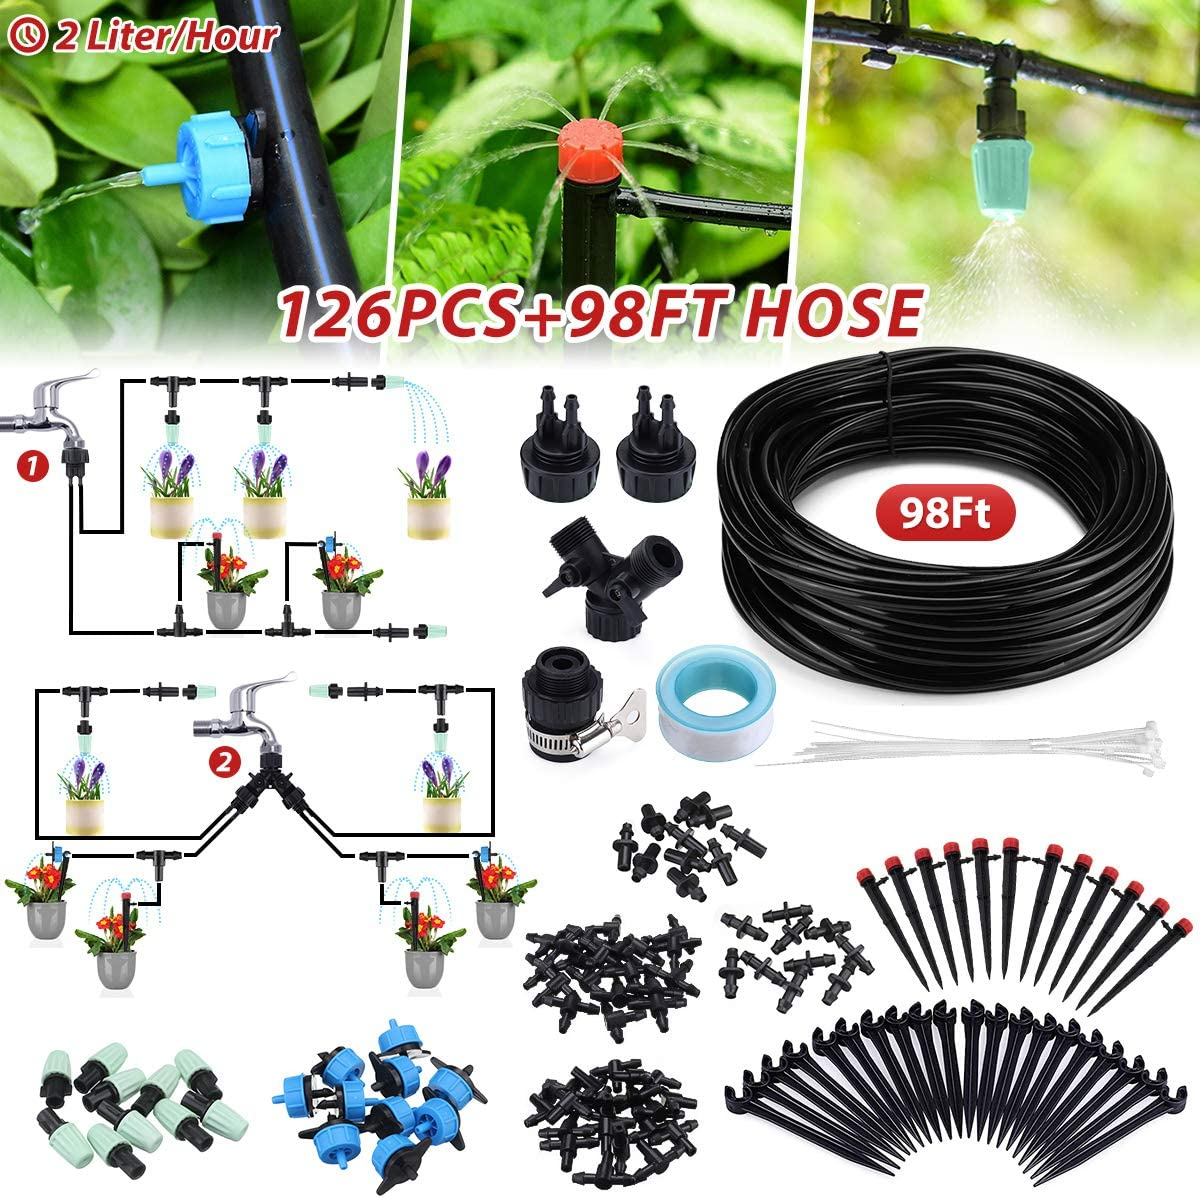 Jeteven 98Ft/30m Drip Irrigation Hydroponics Supplies System Drippers Kit Tubing Accessories DIY Saving Water Automatic Irrigation Equipment Set for Garden Greenhouse, Flower Bed, Patio, Lawn : Garden & Outdoor